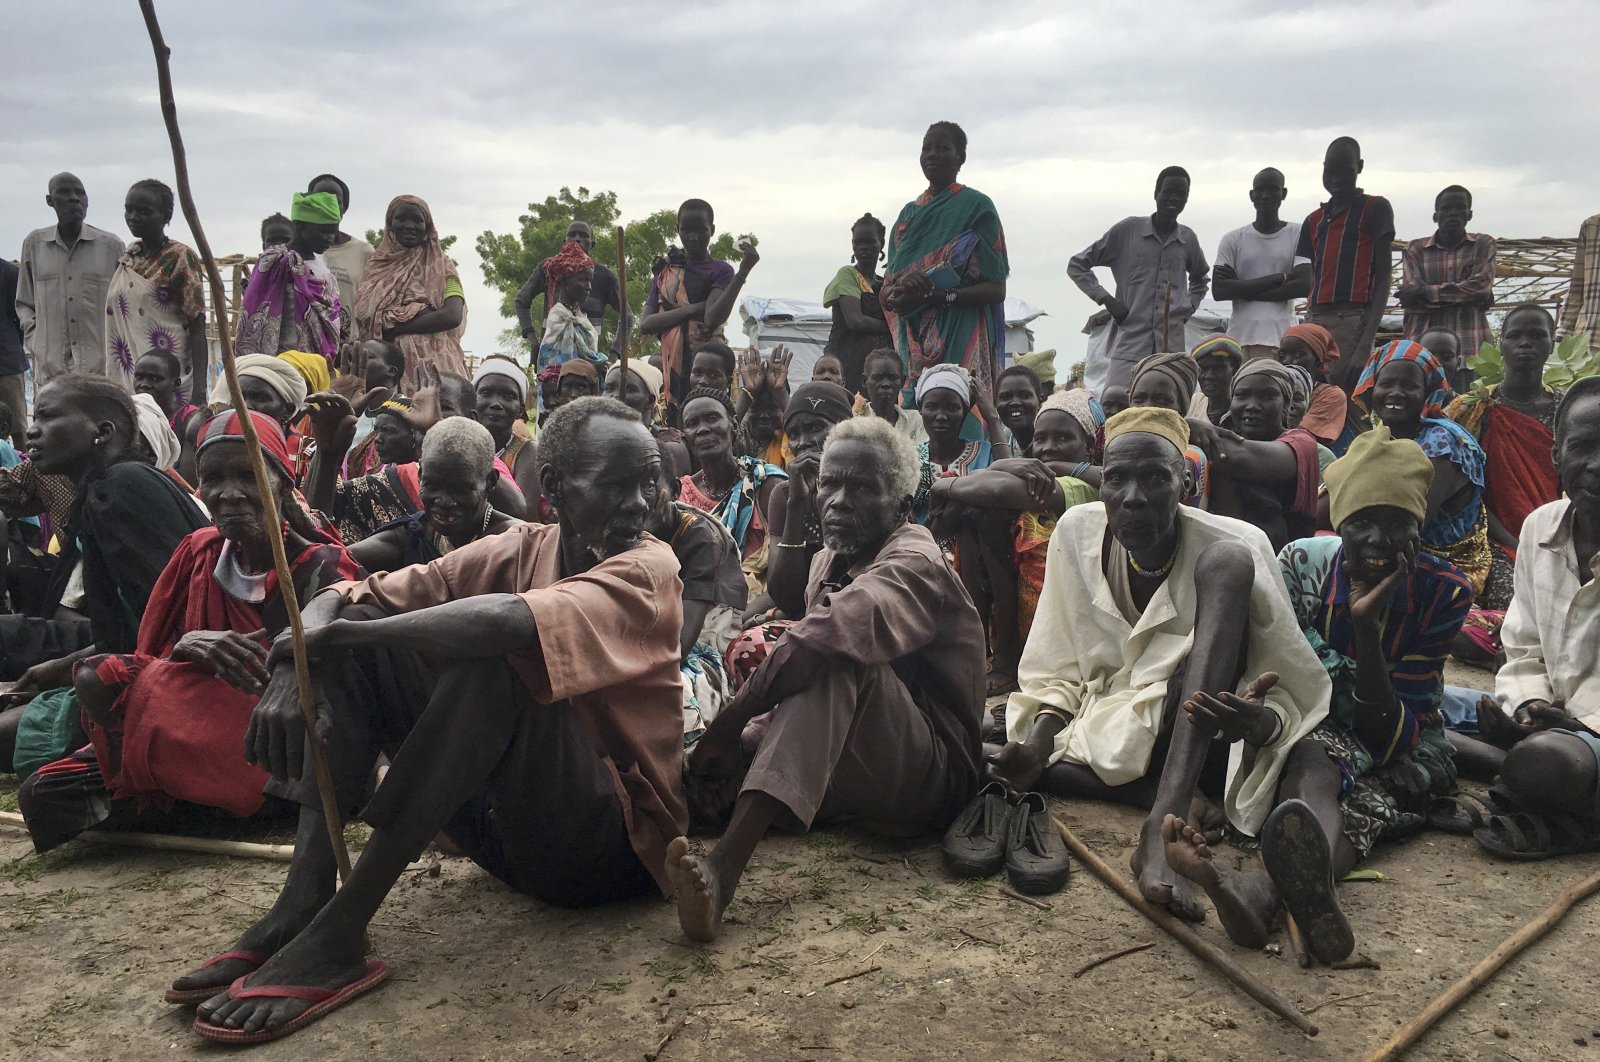 Displaced South Sudanese gather during a visit of UNCHR High Commissioner Filippo Grandi to a new site for displaced people outside of the U.N. protected camp, in Bentiu, South Sudan, June 18, 2017. (AP Photo)